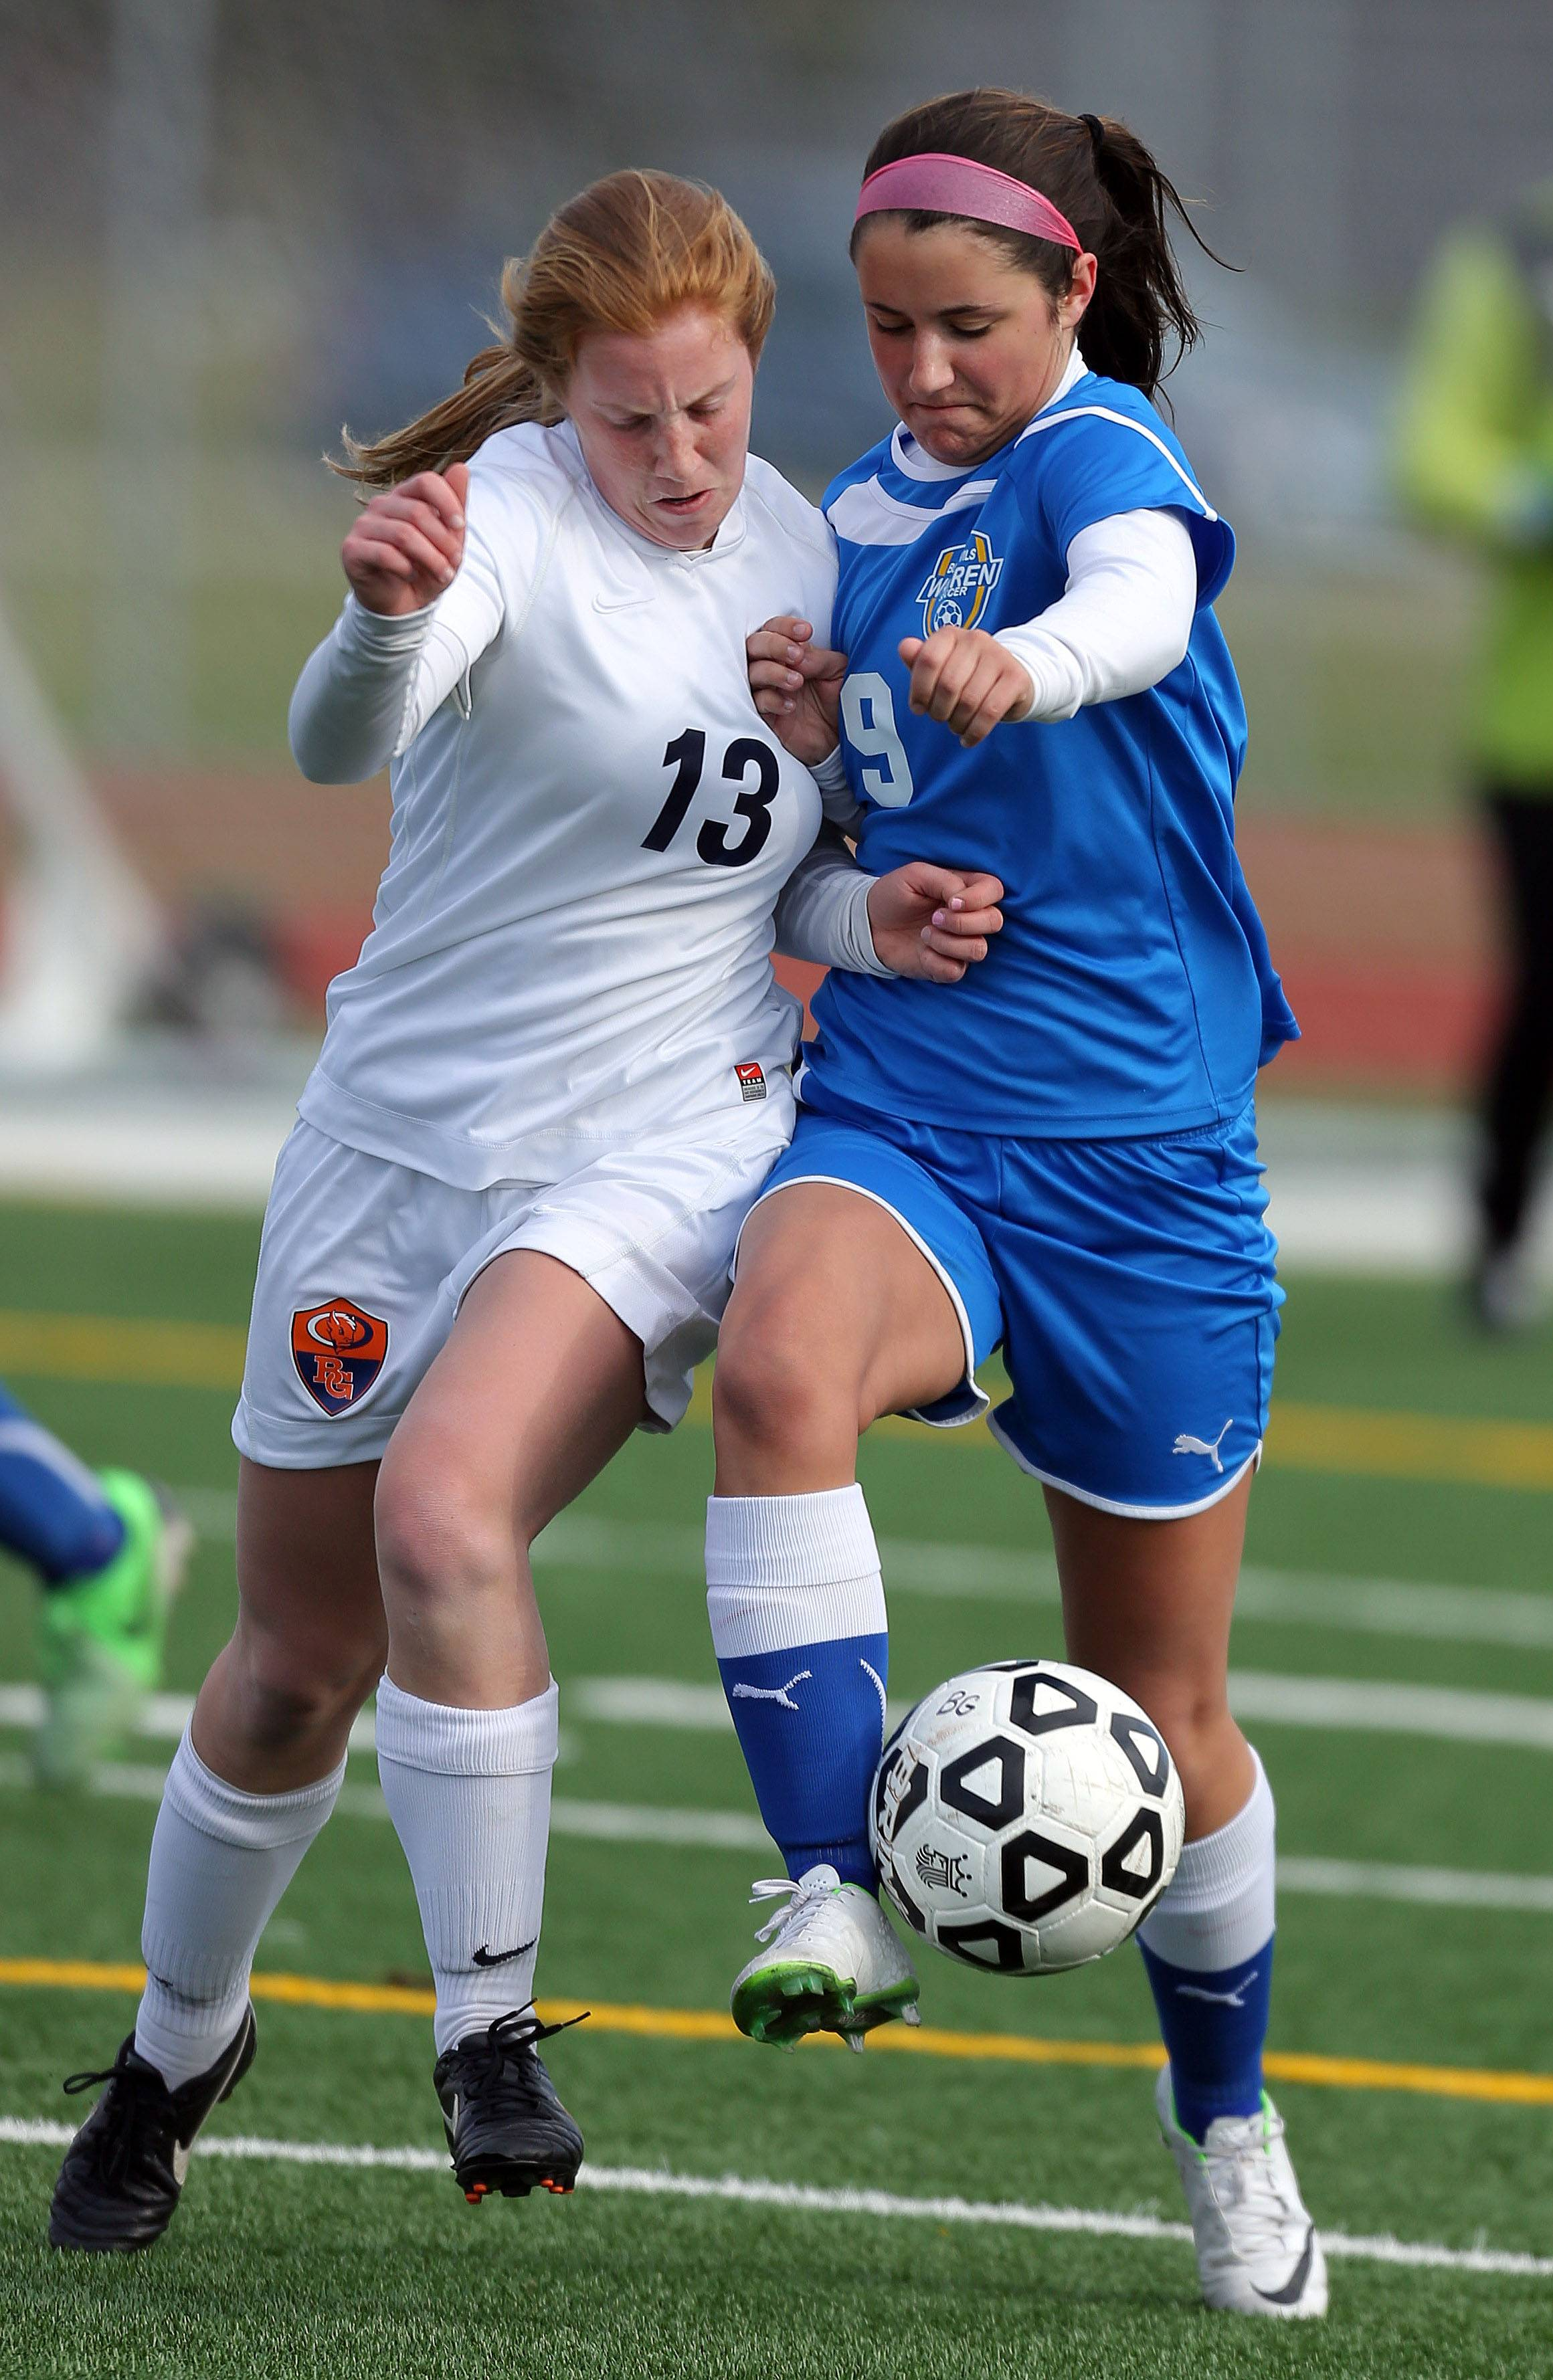 Buffalo Grove's Kelli Zickert, left and Warren's Haylee Parker fight for possession on Tuesday at Buffalo Grove.